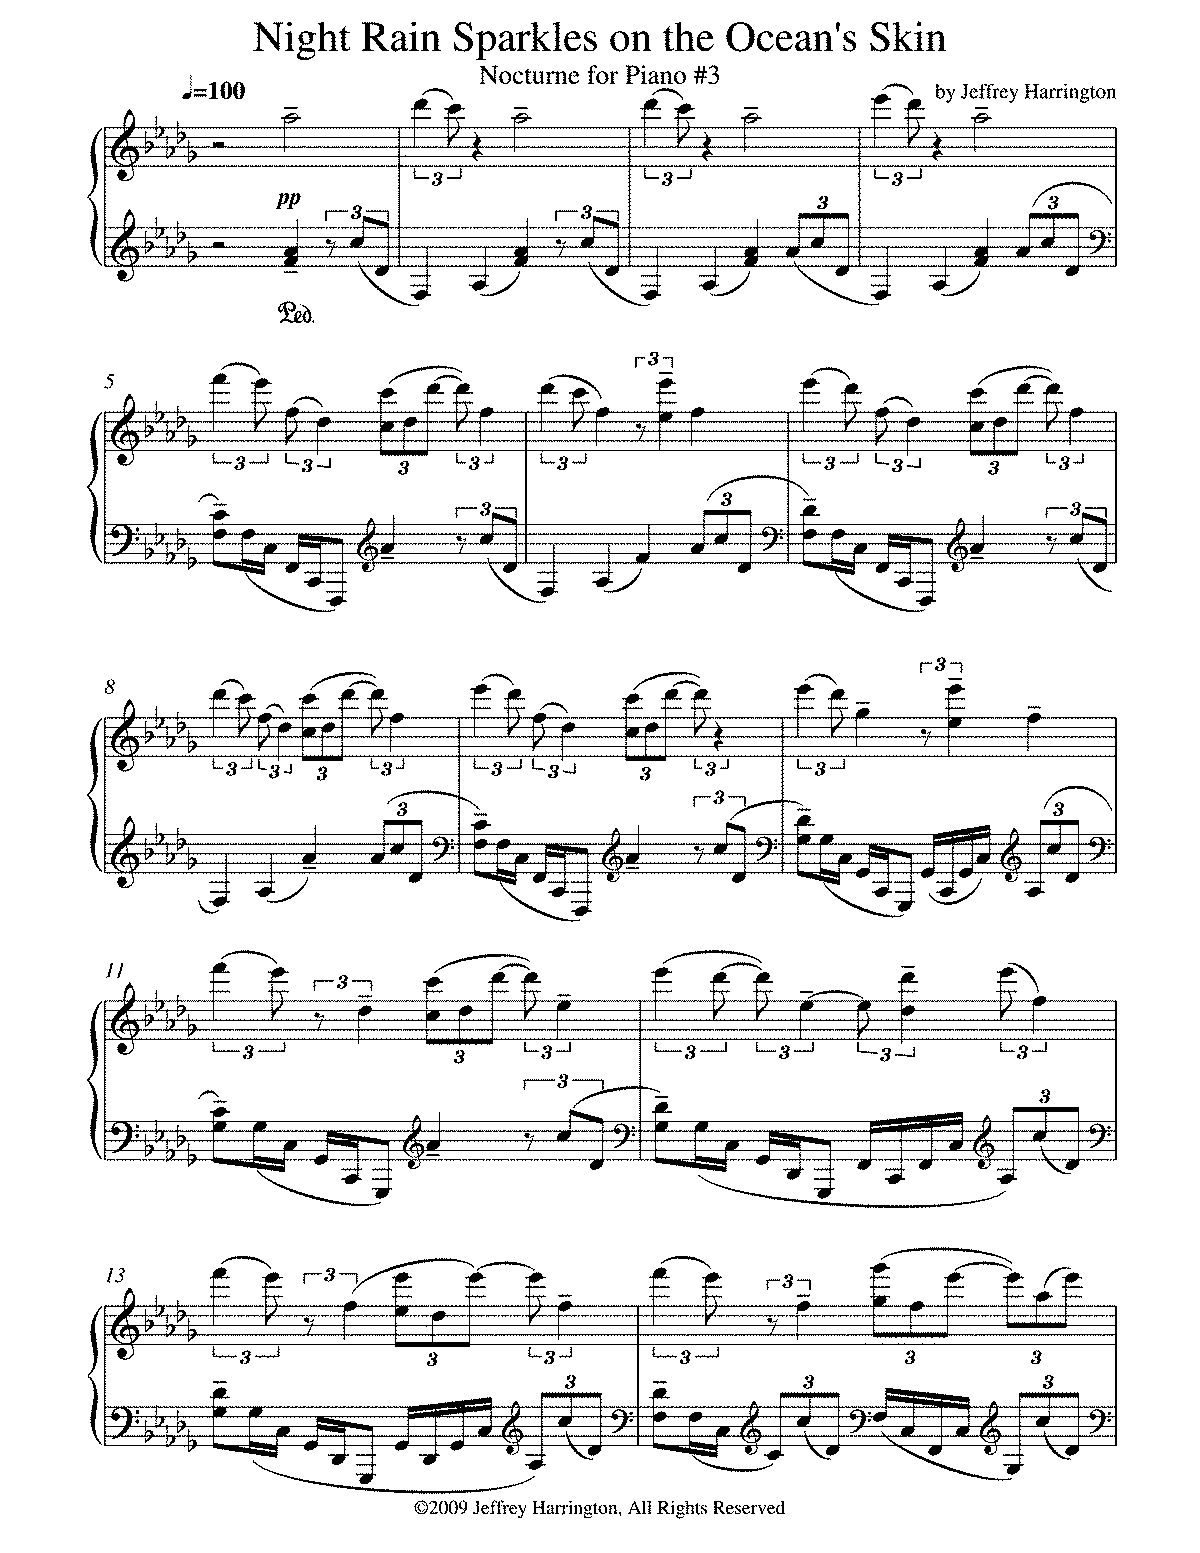 PMLP420027-IMSLP109147-PMLP221834-nocturne for piano 3.pdf